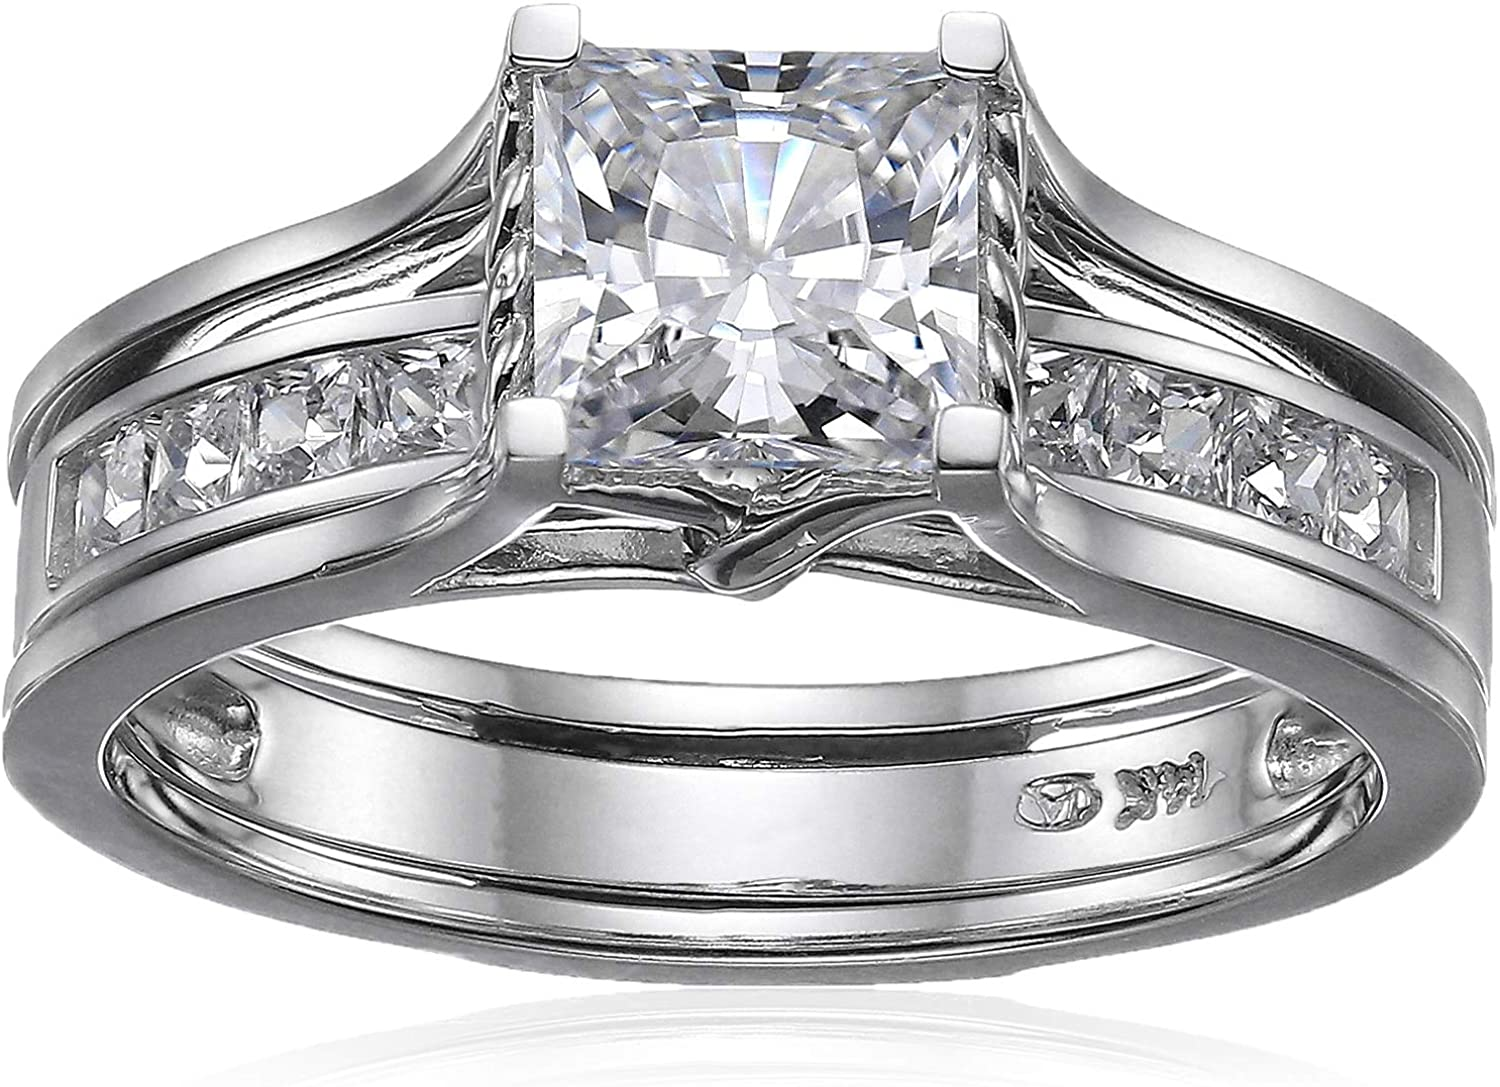 Solid 14k White Gold Bridal Set Princess Cut Solitaire Engagement Ring with Matching Channel Set Wedding Band CZ Cubic Zirconia 2.0ct.